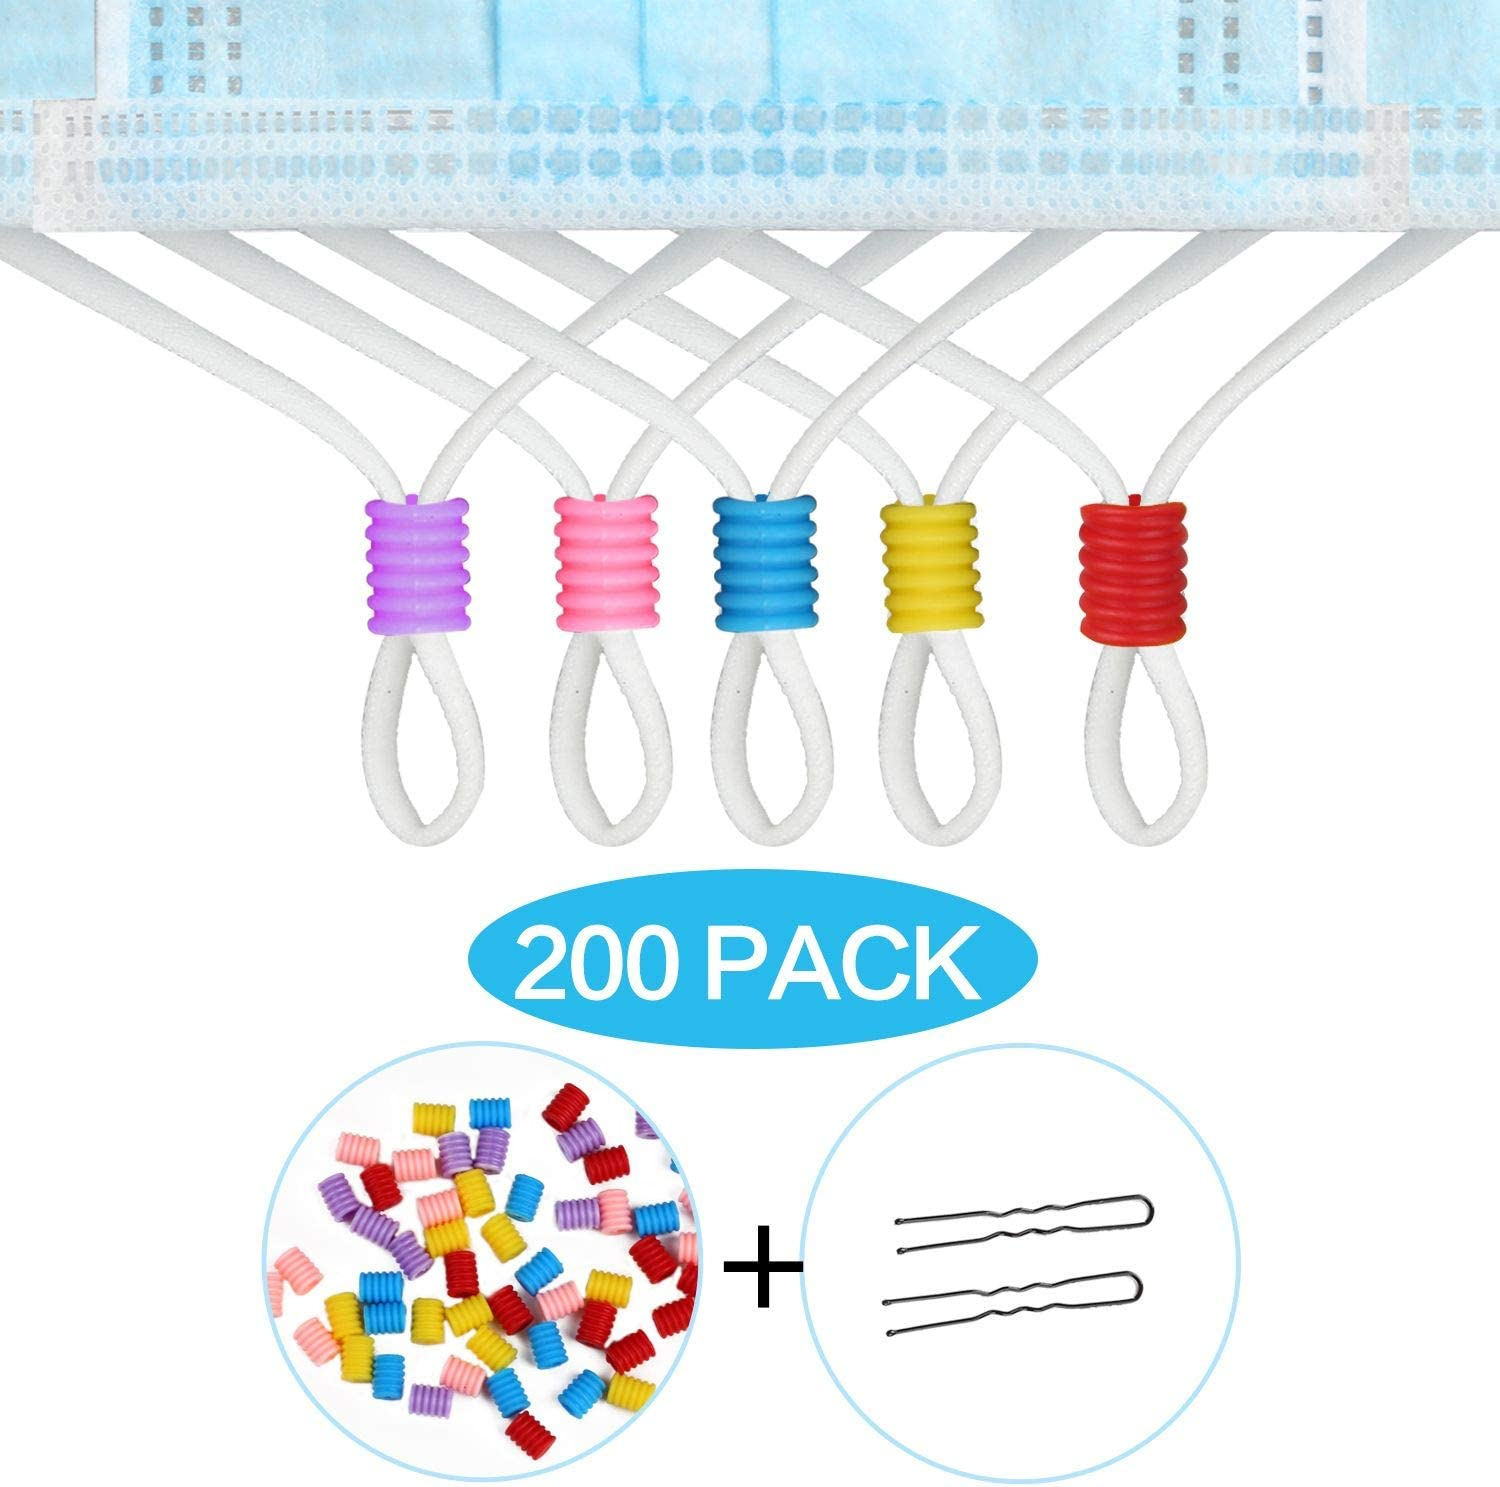 Black, 200 Pack Elastic Toggles Non Slip Stopper with Stringing Tools HOTYELL 200 Pcs Cord Locks Silicone Cord Rope Adjuster for Drawstrings